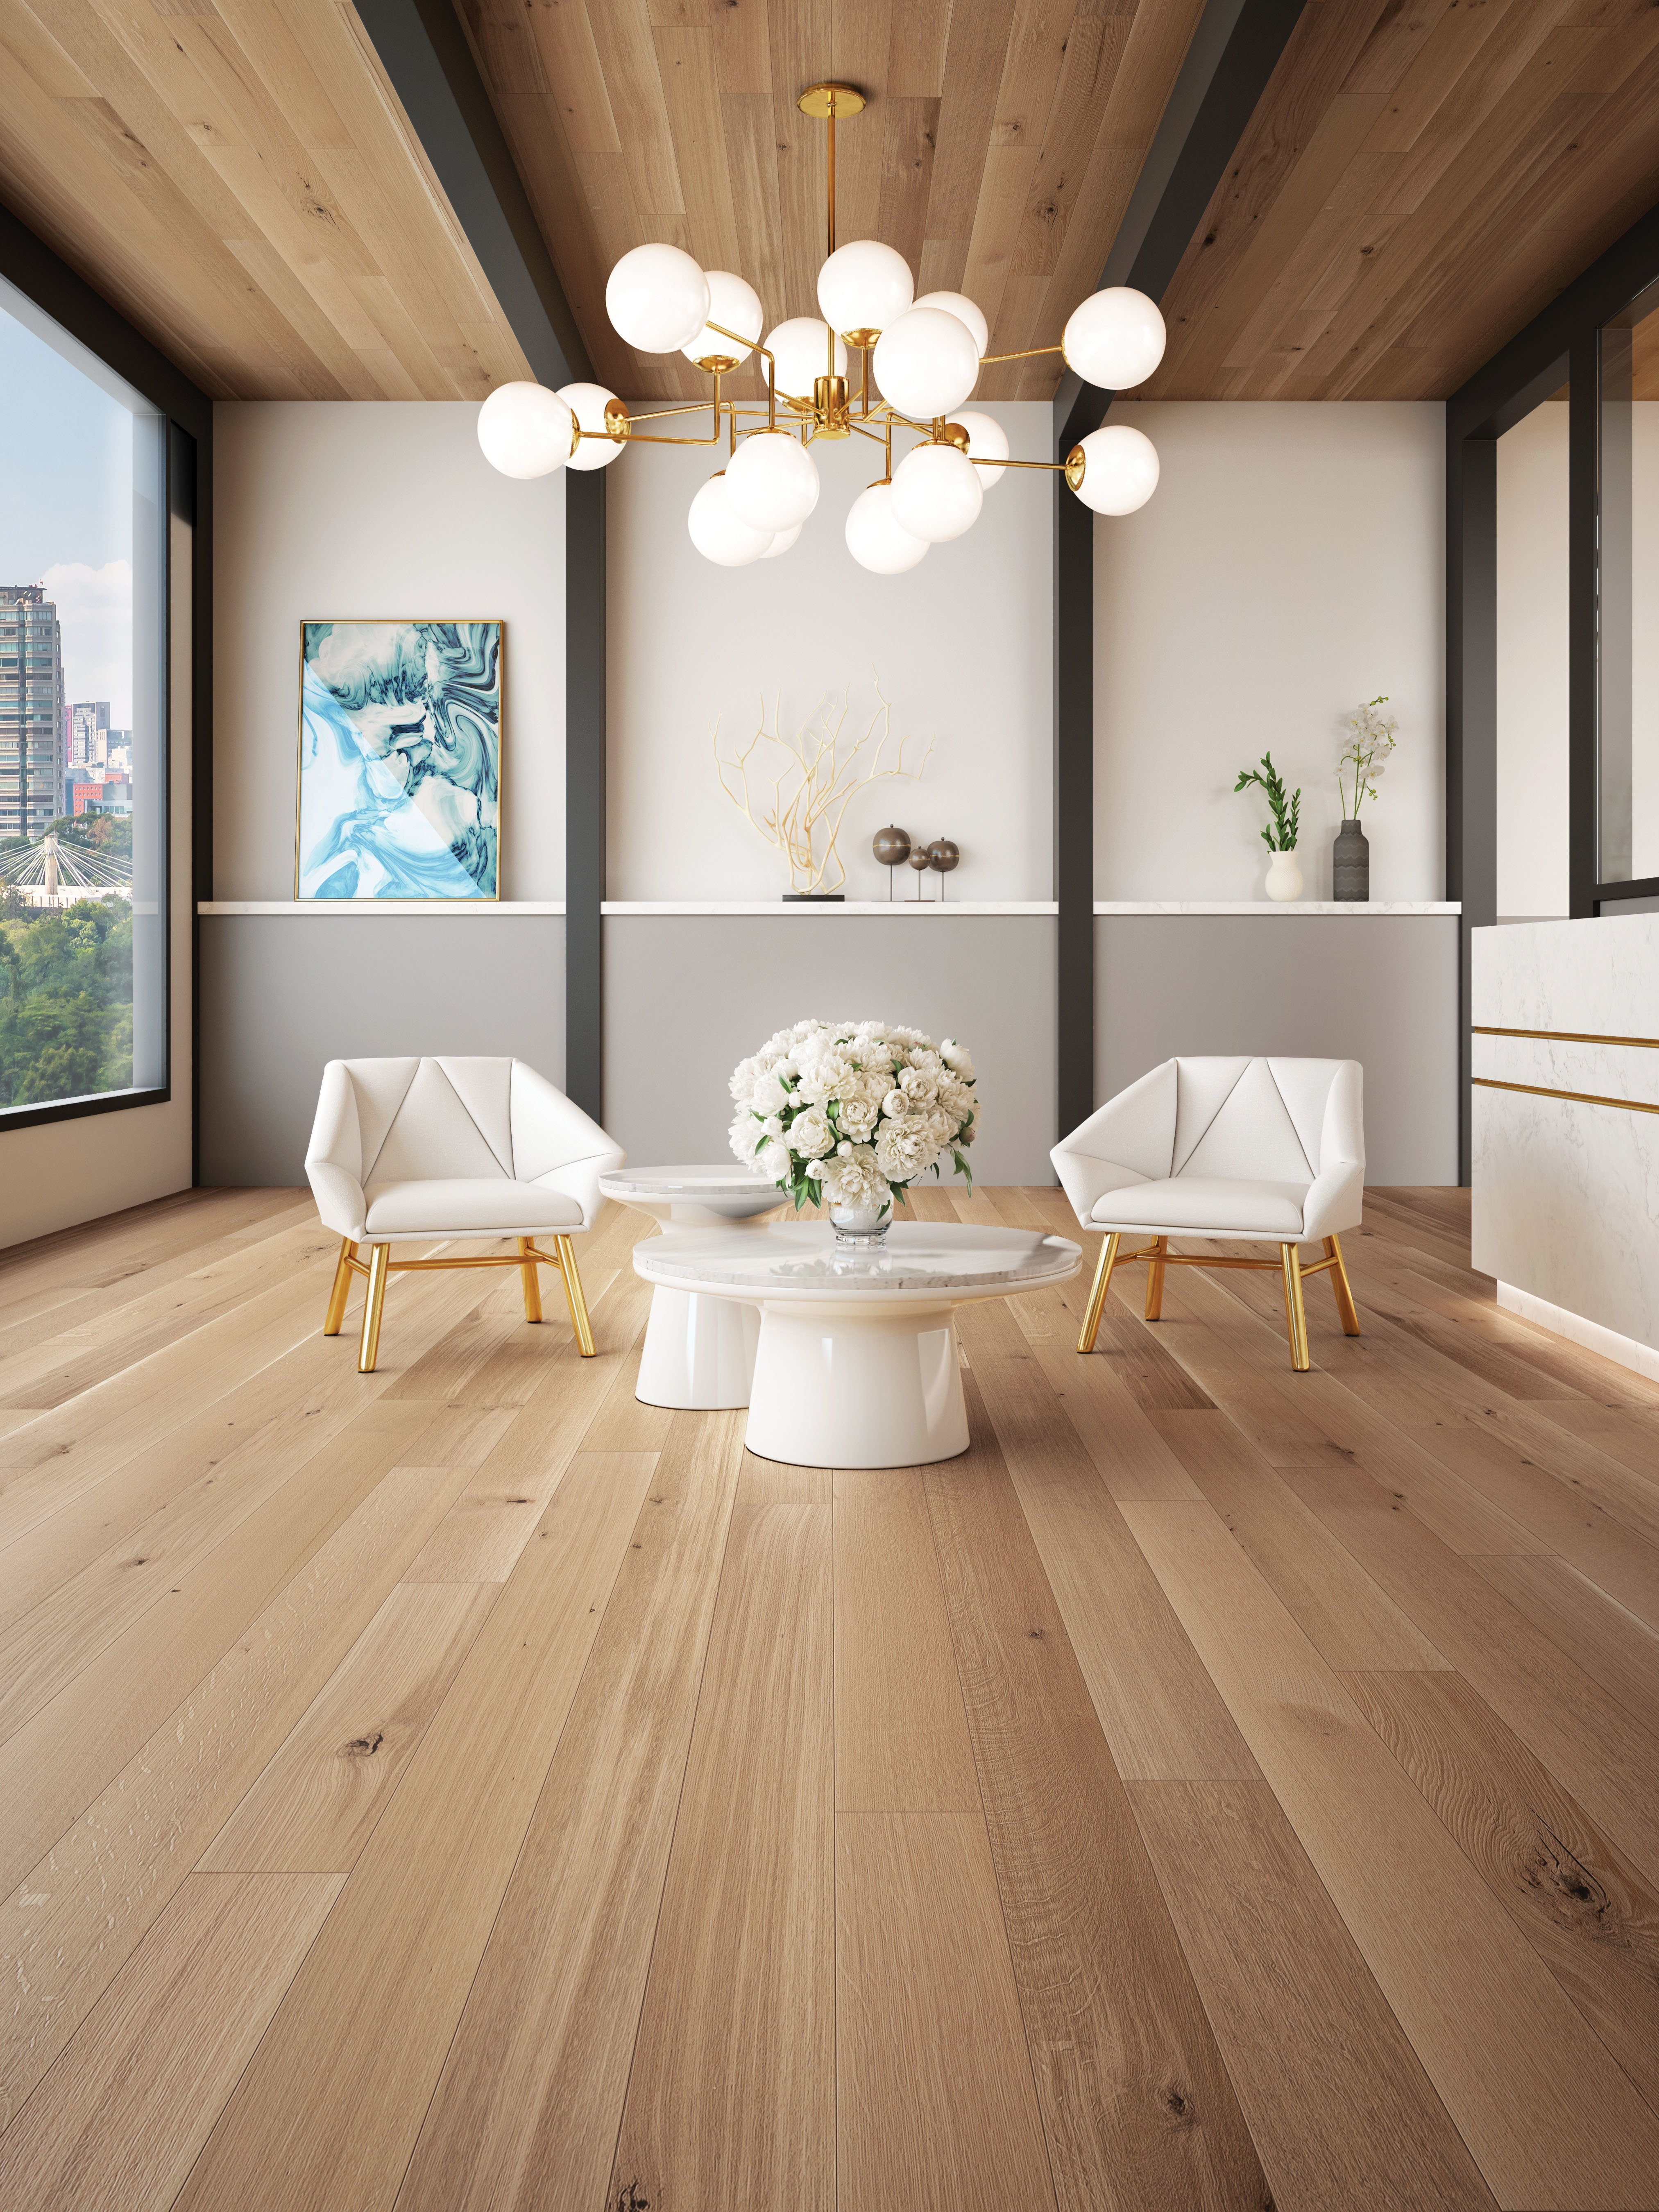 White Oak R&Q Character Brushed - Ambience image